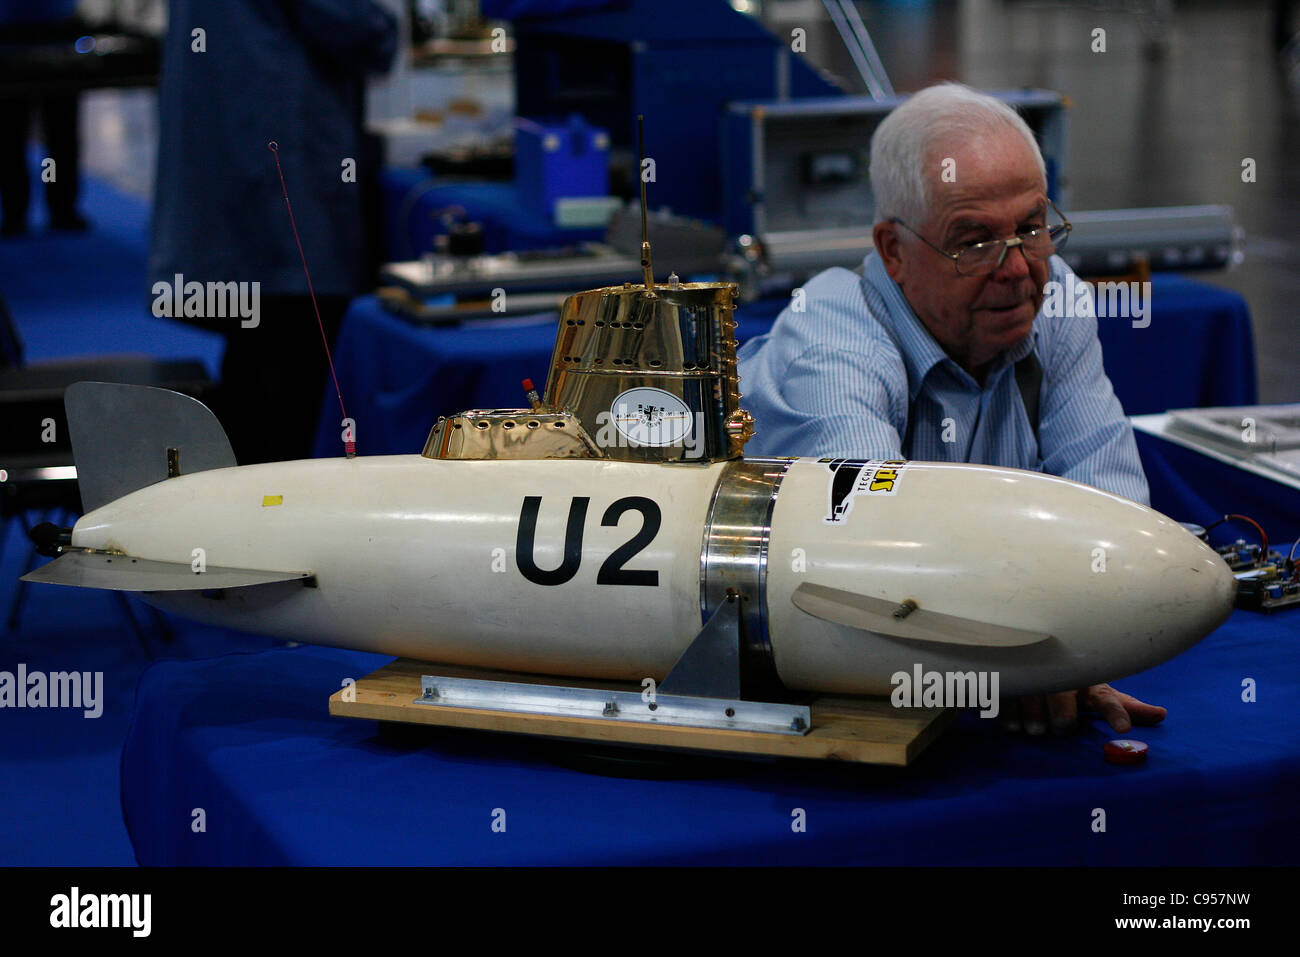 A reproduction of the historical U-boat U2 from the German Navy exhibited in a trade fair in Leipzig, Germany. - Stock Image